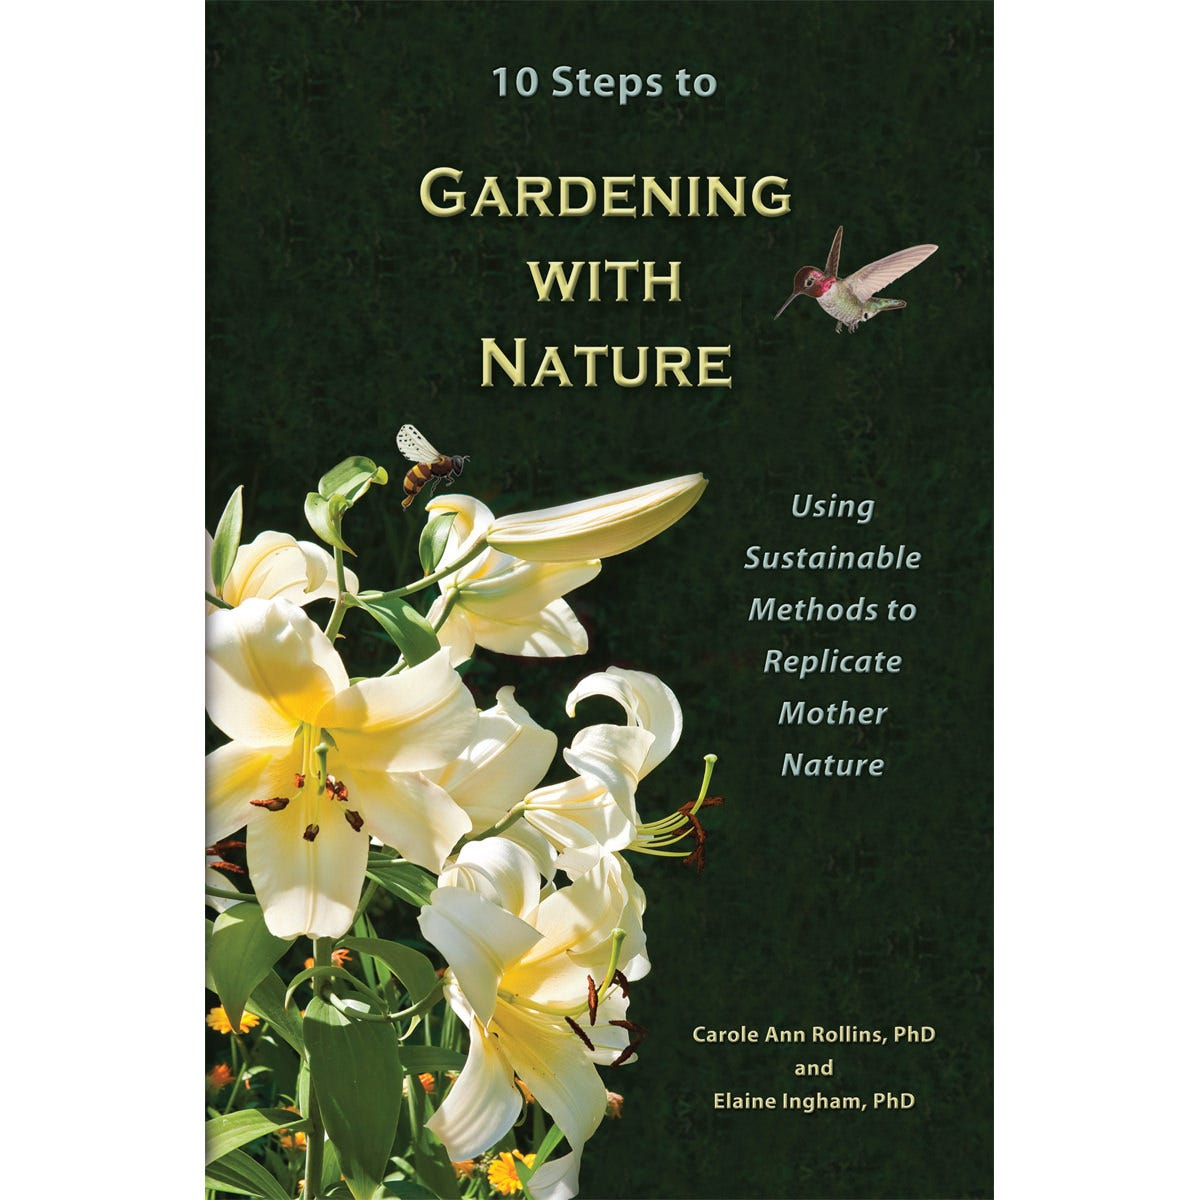 10 Steps to Gardening with Nature *DISCONTINUED* This item has been discontinued. We recommend checking out the other excellent books and videos offered by Growers House. 10 Steps to Gardening with Nature: Using Sustainable Methods to Replicate Mother Nature (ISBN: 0-979-75614-6) By Carole Ann Rollins, PhD, and Elaine Ingham, PhD • 100 page full color book• Question and answer format• Practical guidelines and steps to follow• Both authors hold PhDs• Gardening With Nature means more than just switching from chemical fertilizers to organic gardening• The  switch  involves implementing a whole new preventative approach to gardening• Descriptions of how to grow organically and sustainably• 174 Beautiful full color photos and illustrations• Engaging, informative, and inspiring